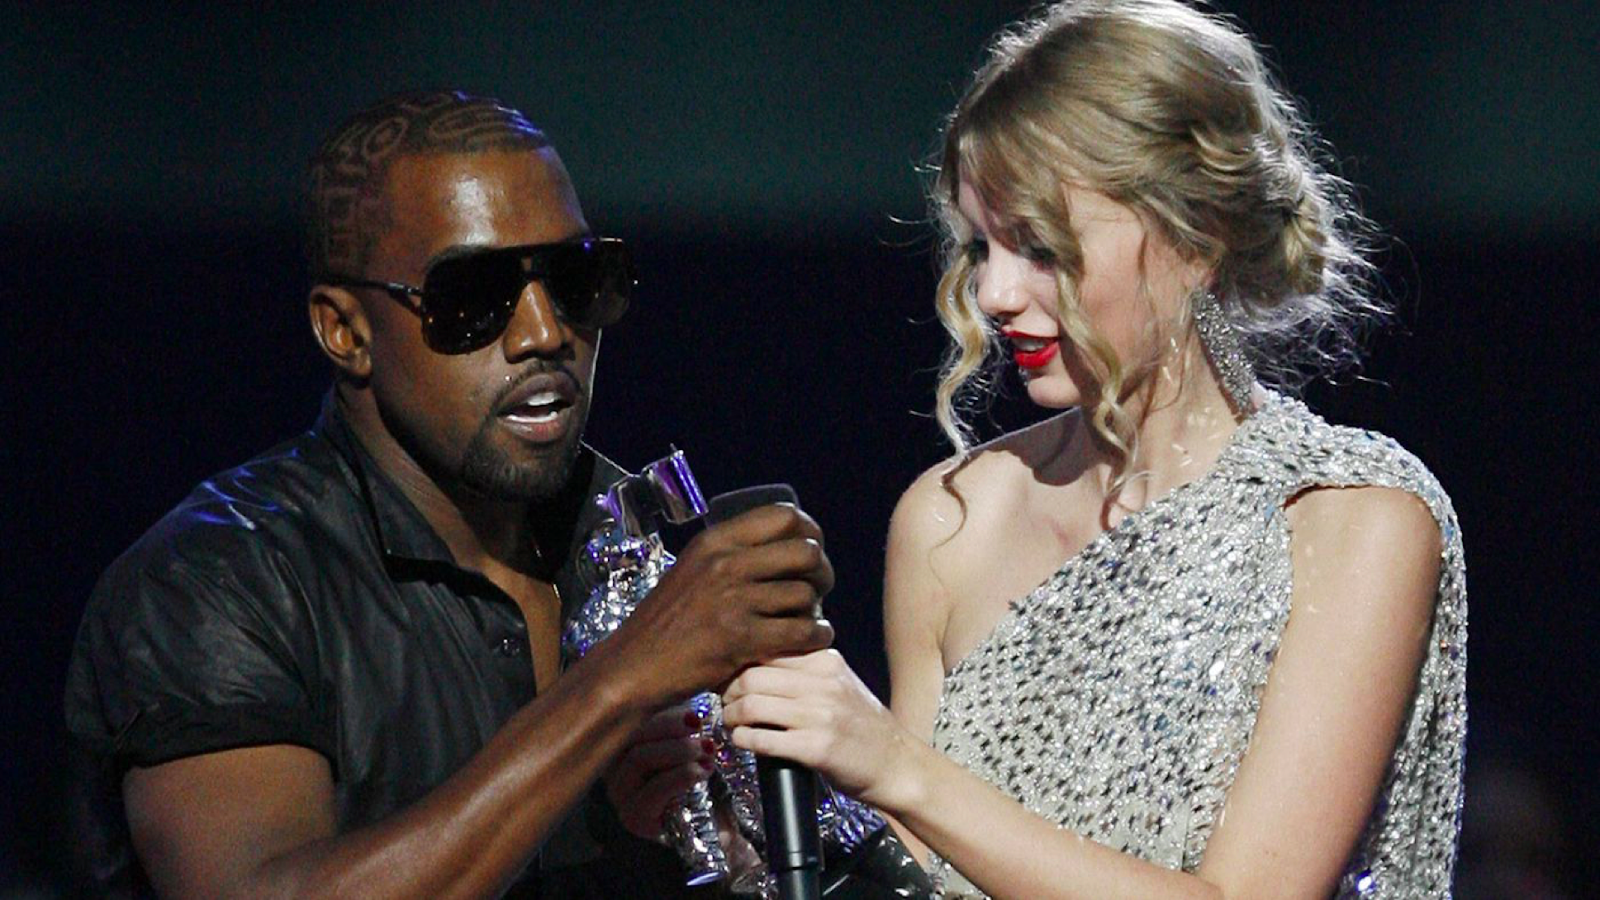 Kanye West and Taylor Swift Controversy